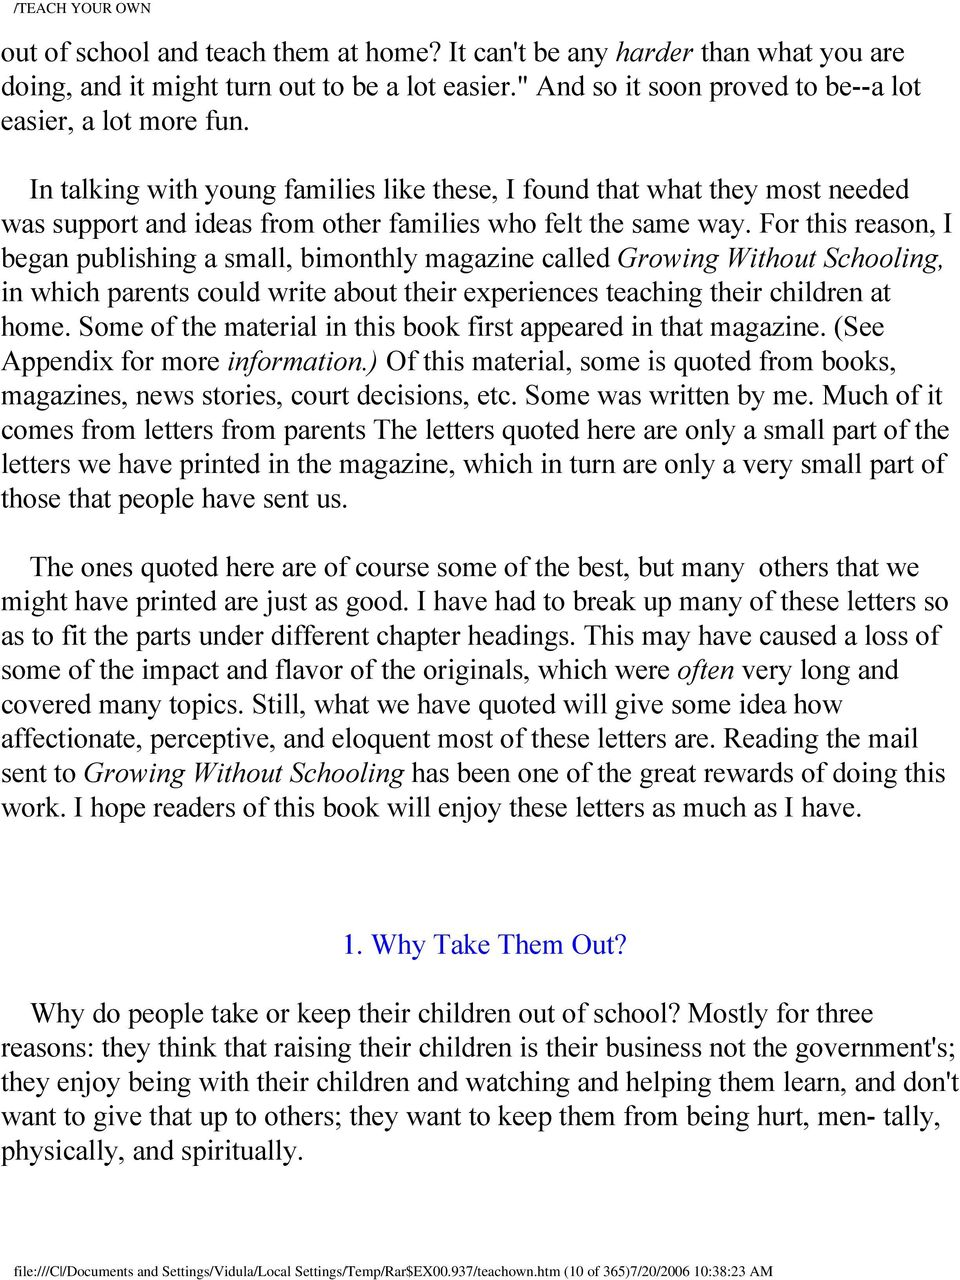 For this reason, I began publishing a small, bimonthly magazine called Growing Without Schooling, in which parents could write about their experiences teaching their children at home.